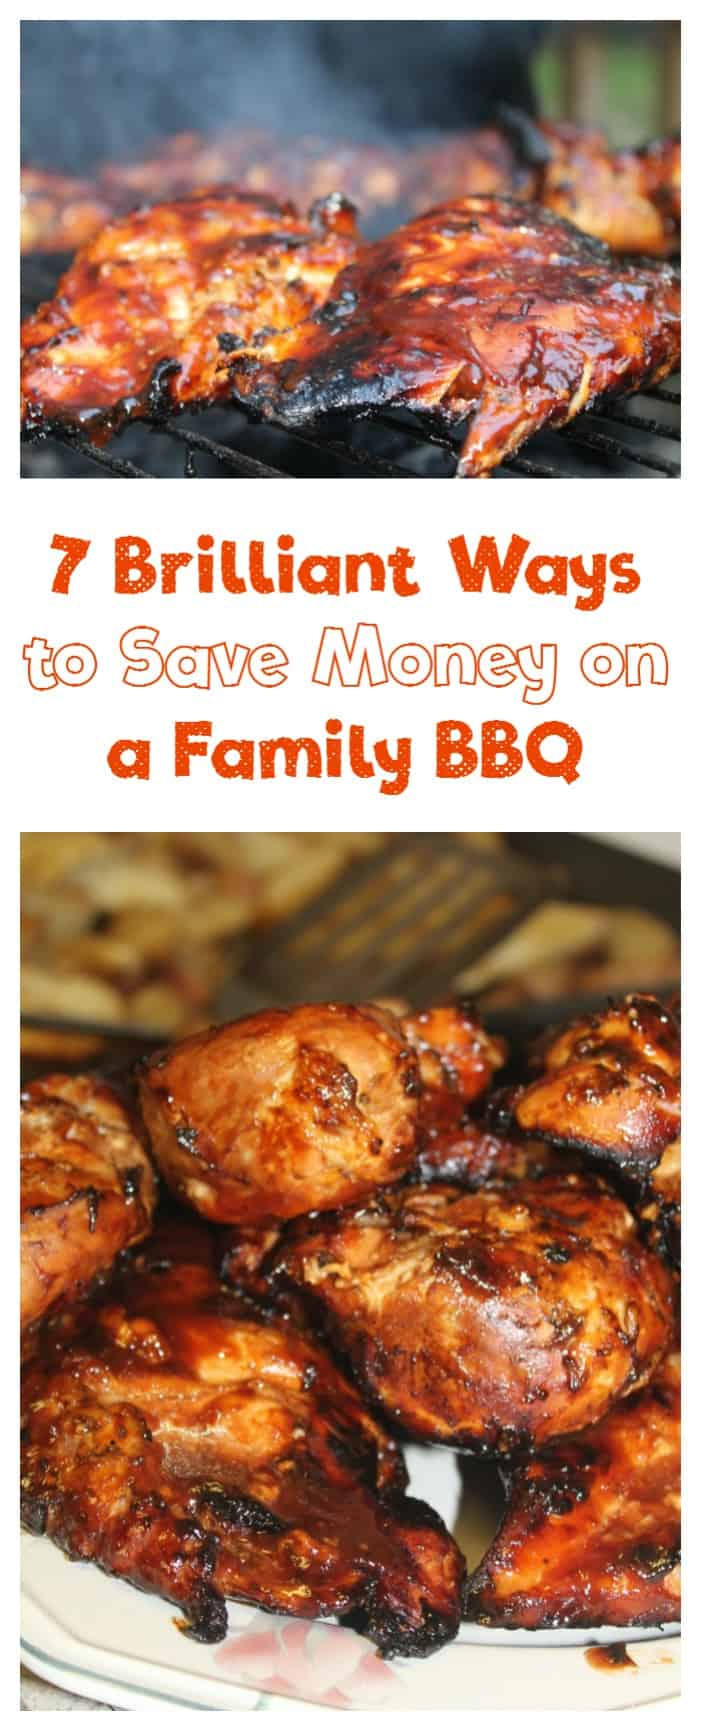 Hosting a family BBQ? Check out my favorite ways to save money without sacrificing quality thanks to Member's Mark at @SamsClub!